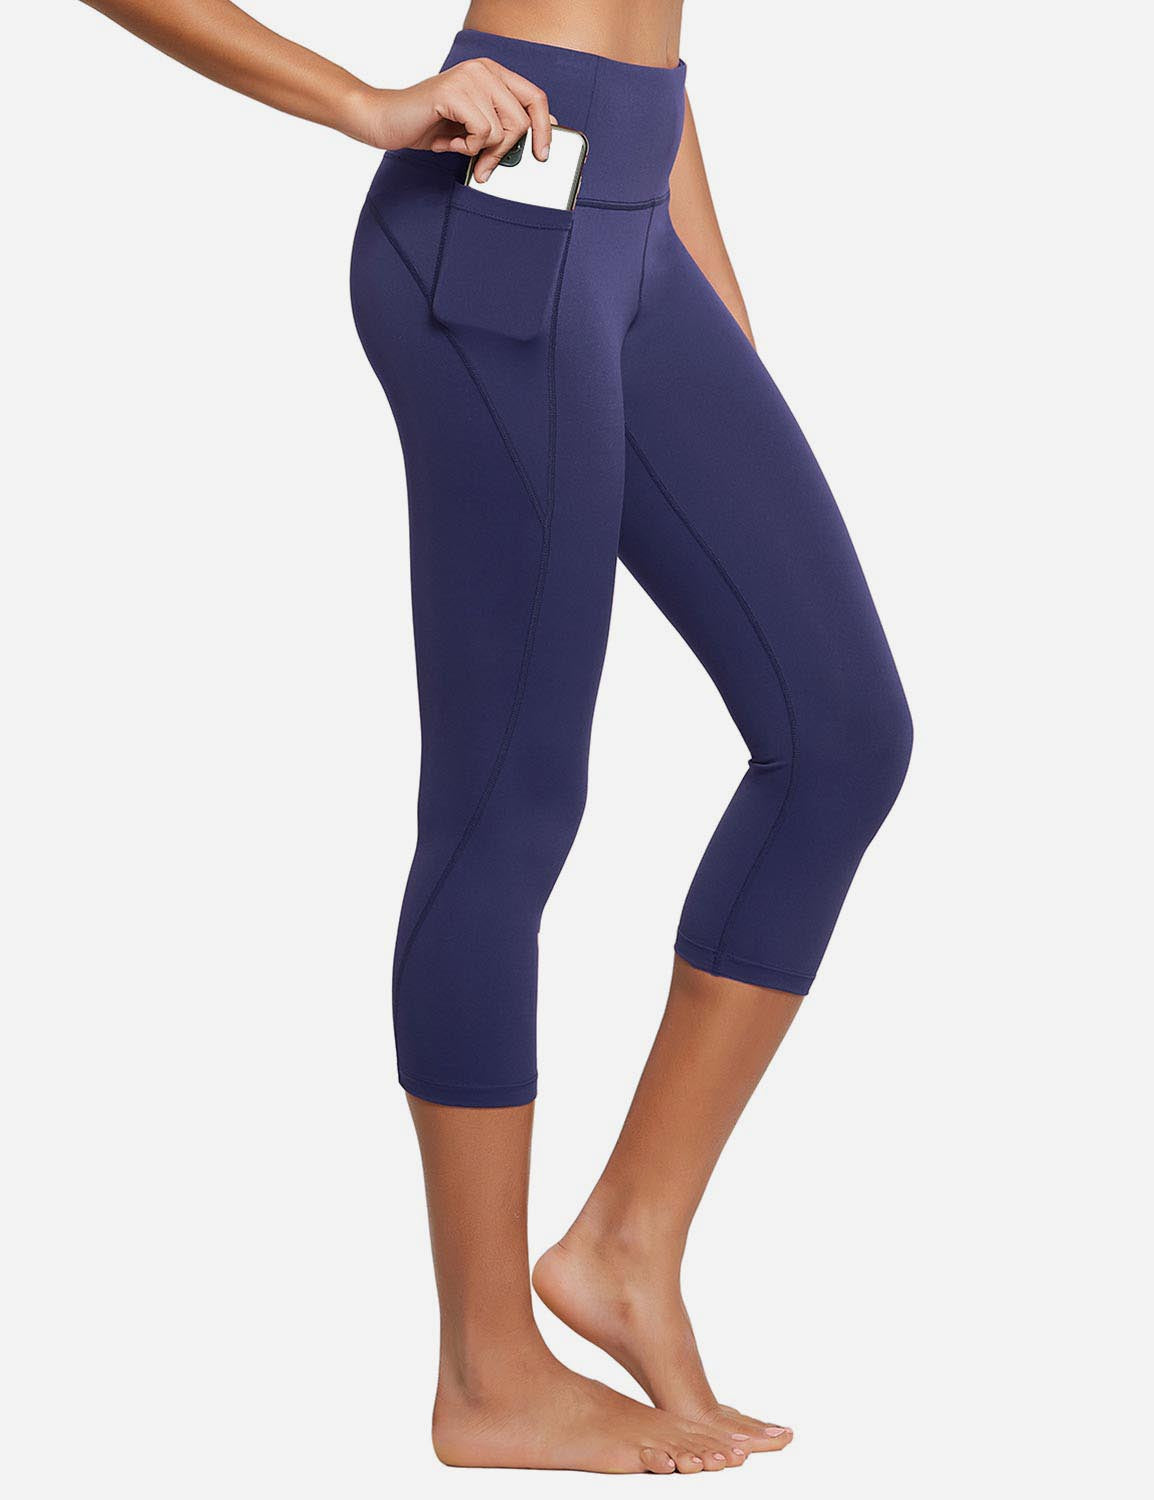 Baleaf Womens High Rise Bottom Contour Pocketed Capris Dark Navy Side